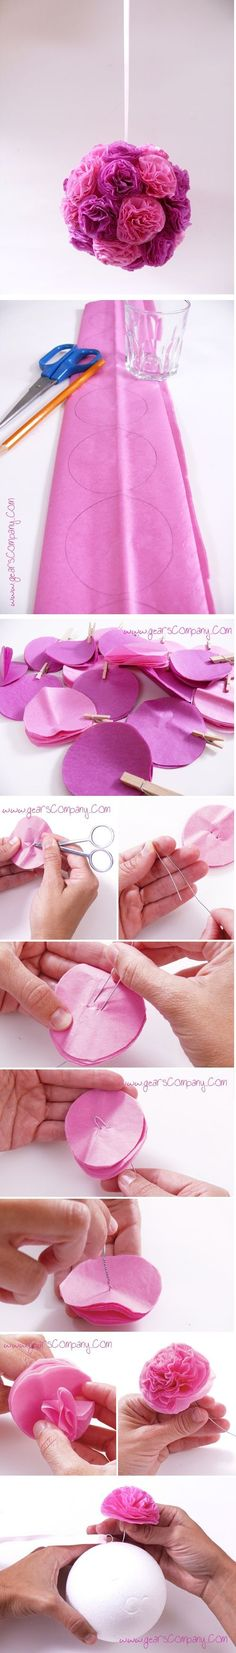 Tissue paper flowers and more